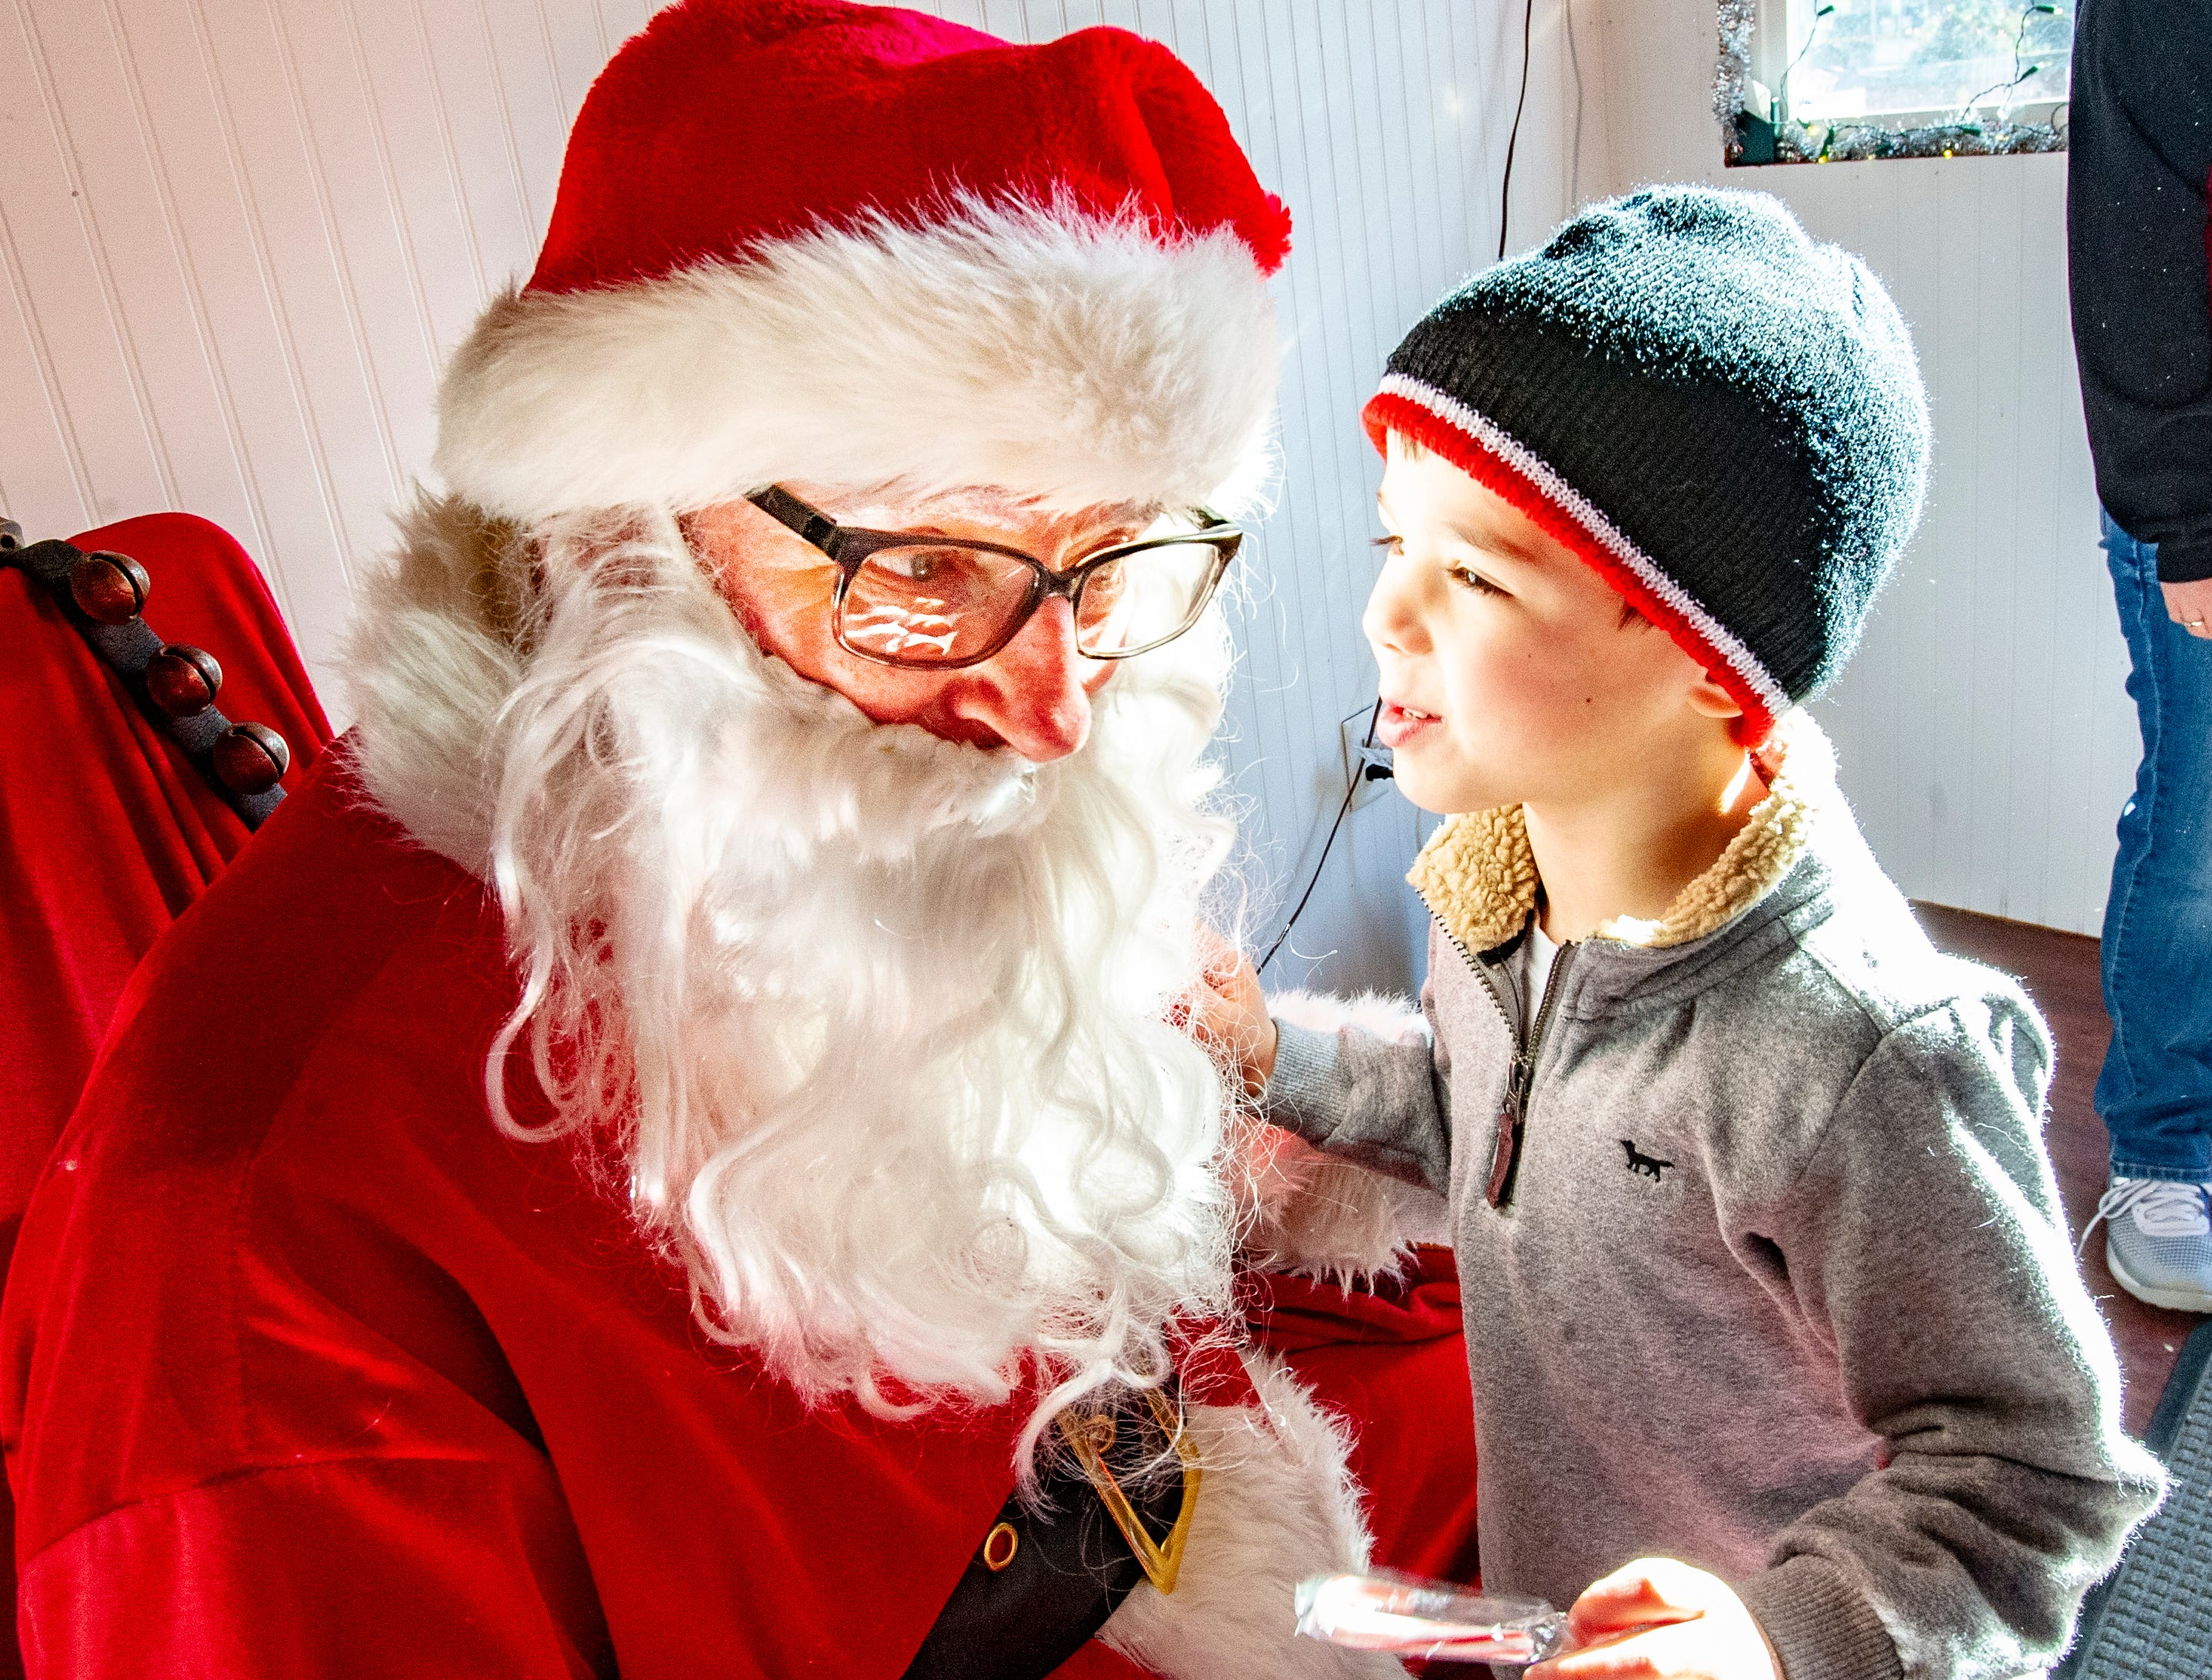 Jordan Ripley, 5, of Indianola whispers his Christmas wish list to Santa at the Santa House in downtown Indianola Nov. 24, 2018.